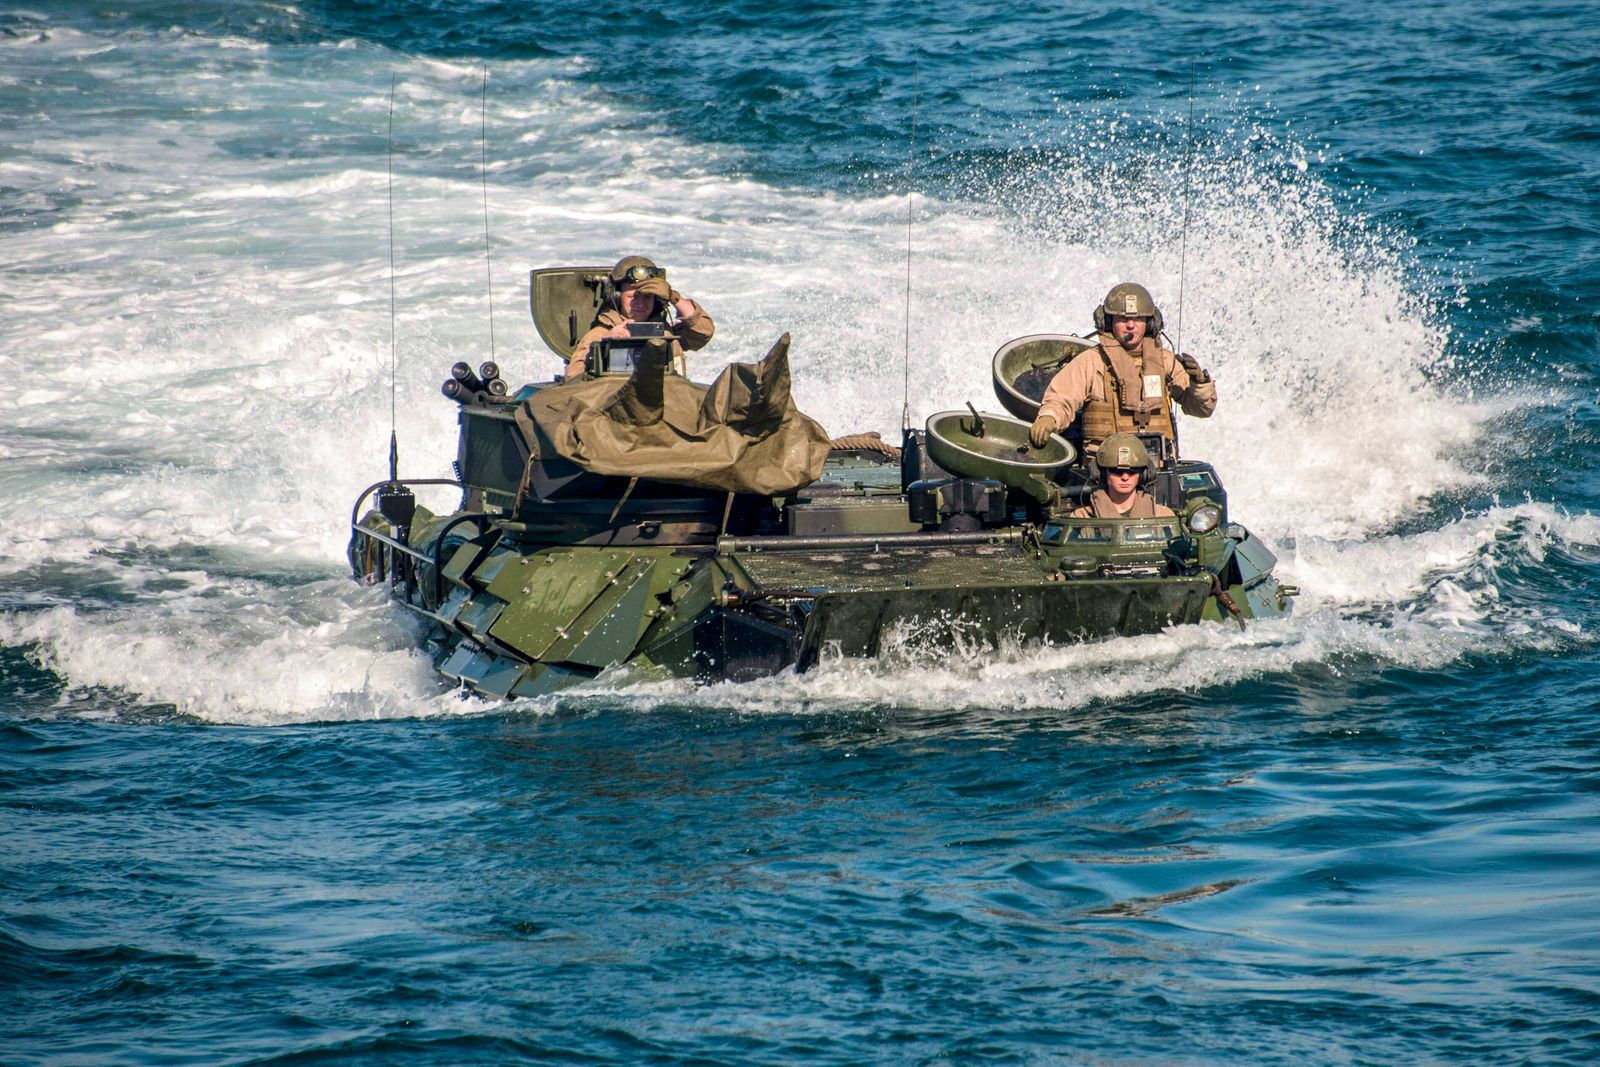 March 9, 2020 - Atlantic Ocean - Marines assigned to 2nd Assault Amphibian Battalion (2nd AABN), 2nd Marine Division bas